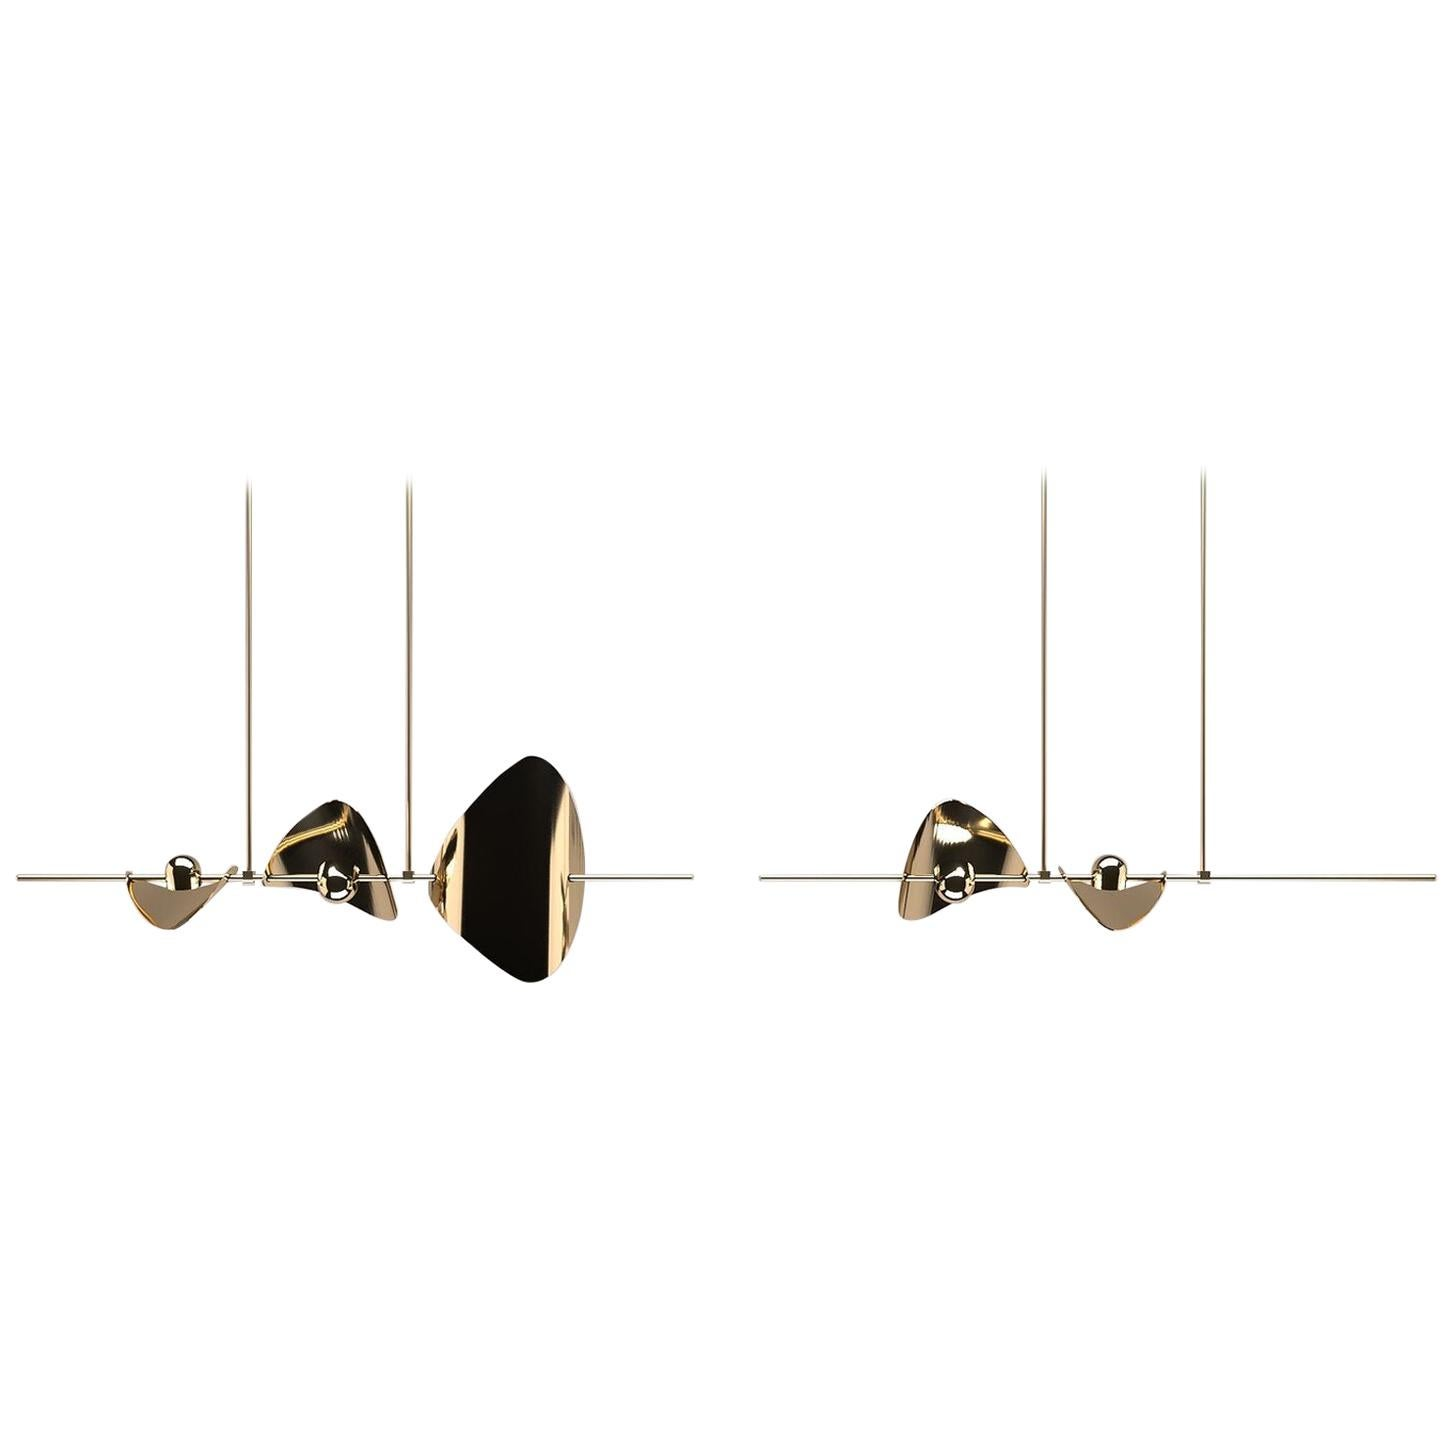 Bonnie Config. 4 Contemporary LED Chandelier, Solid Brass or Chromed, Handmade